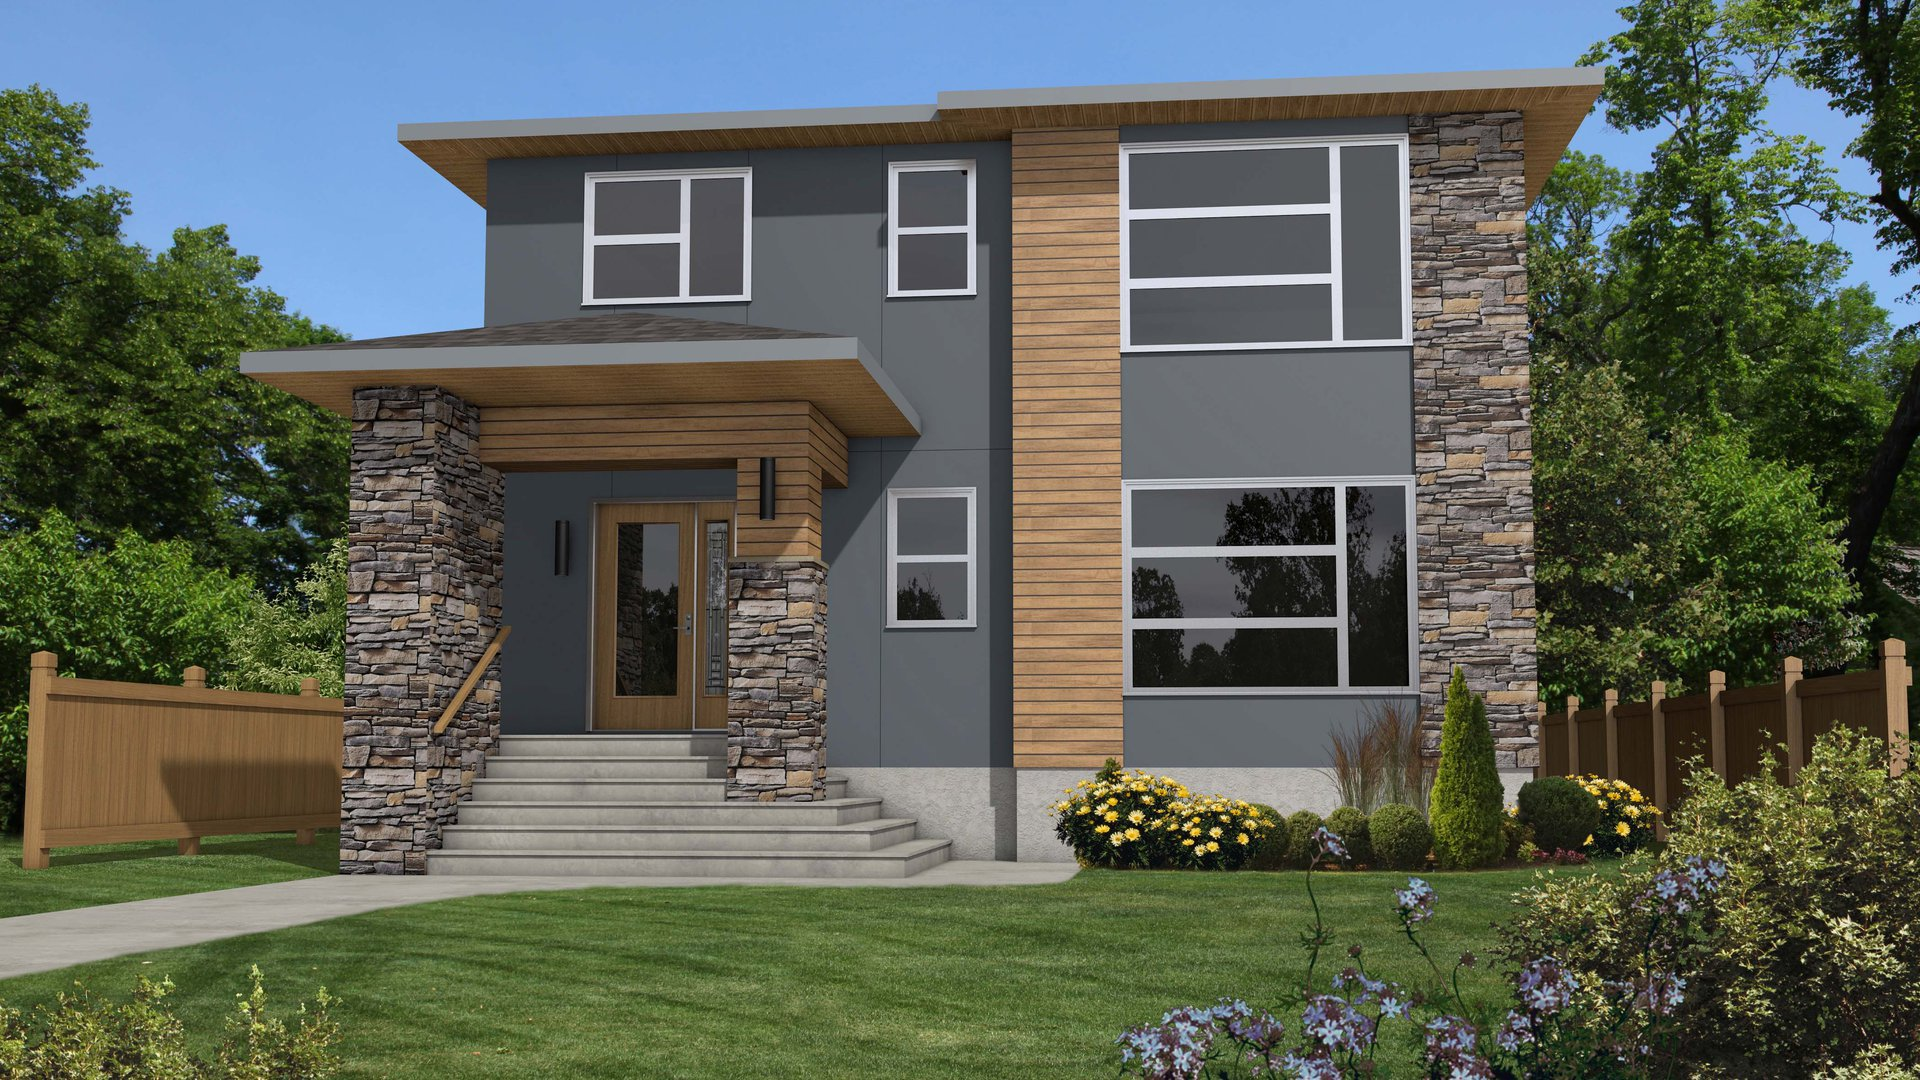 Nelson Homes modular two story home plans.jpg